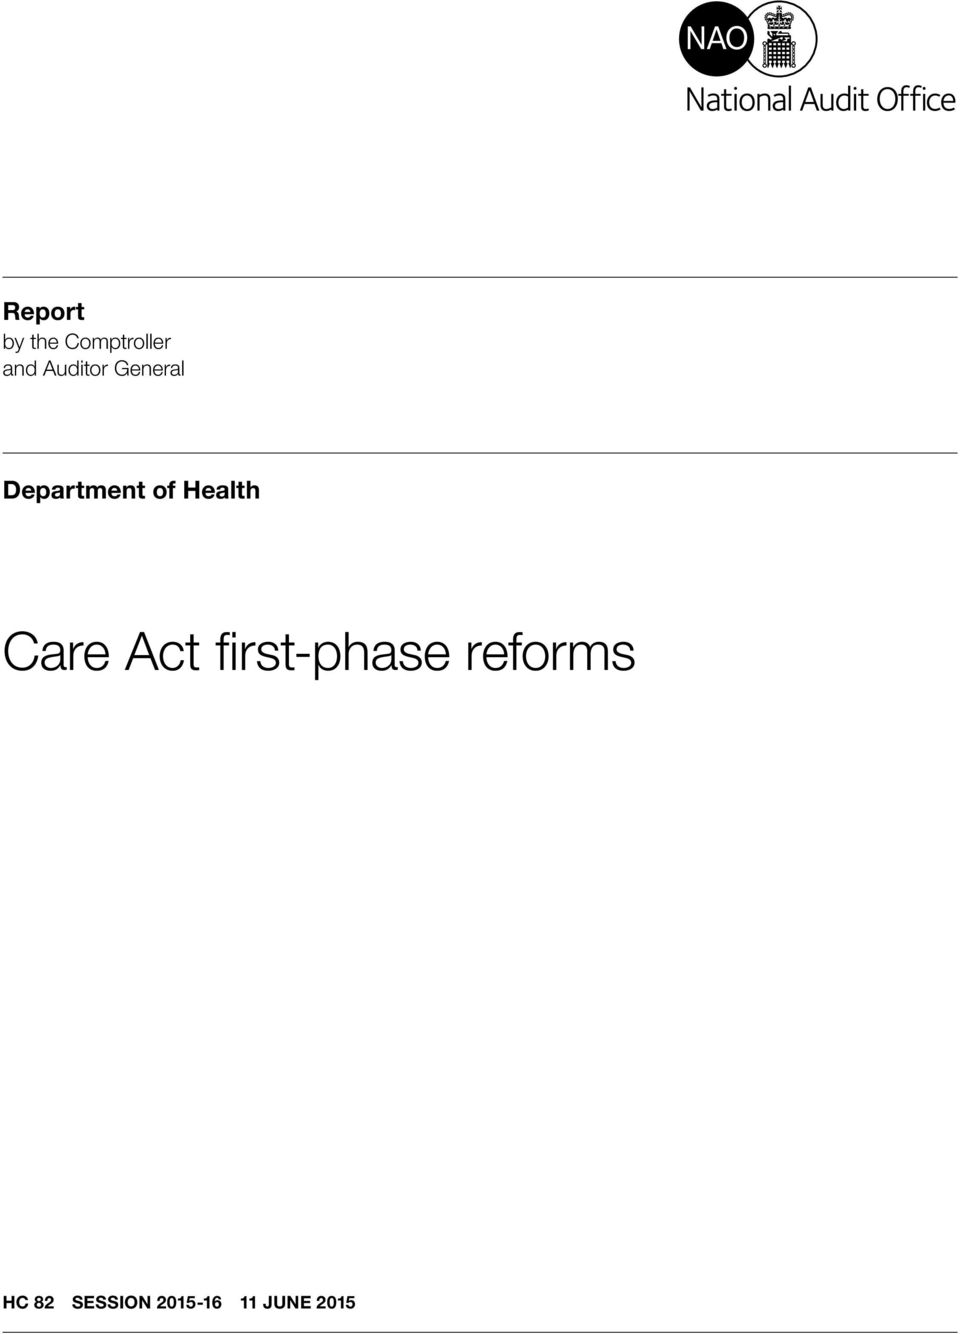 Health Care Act first-phase